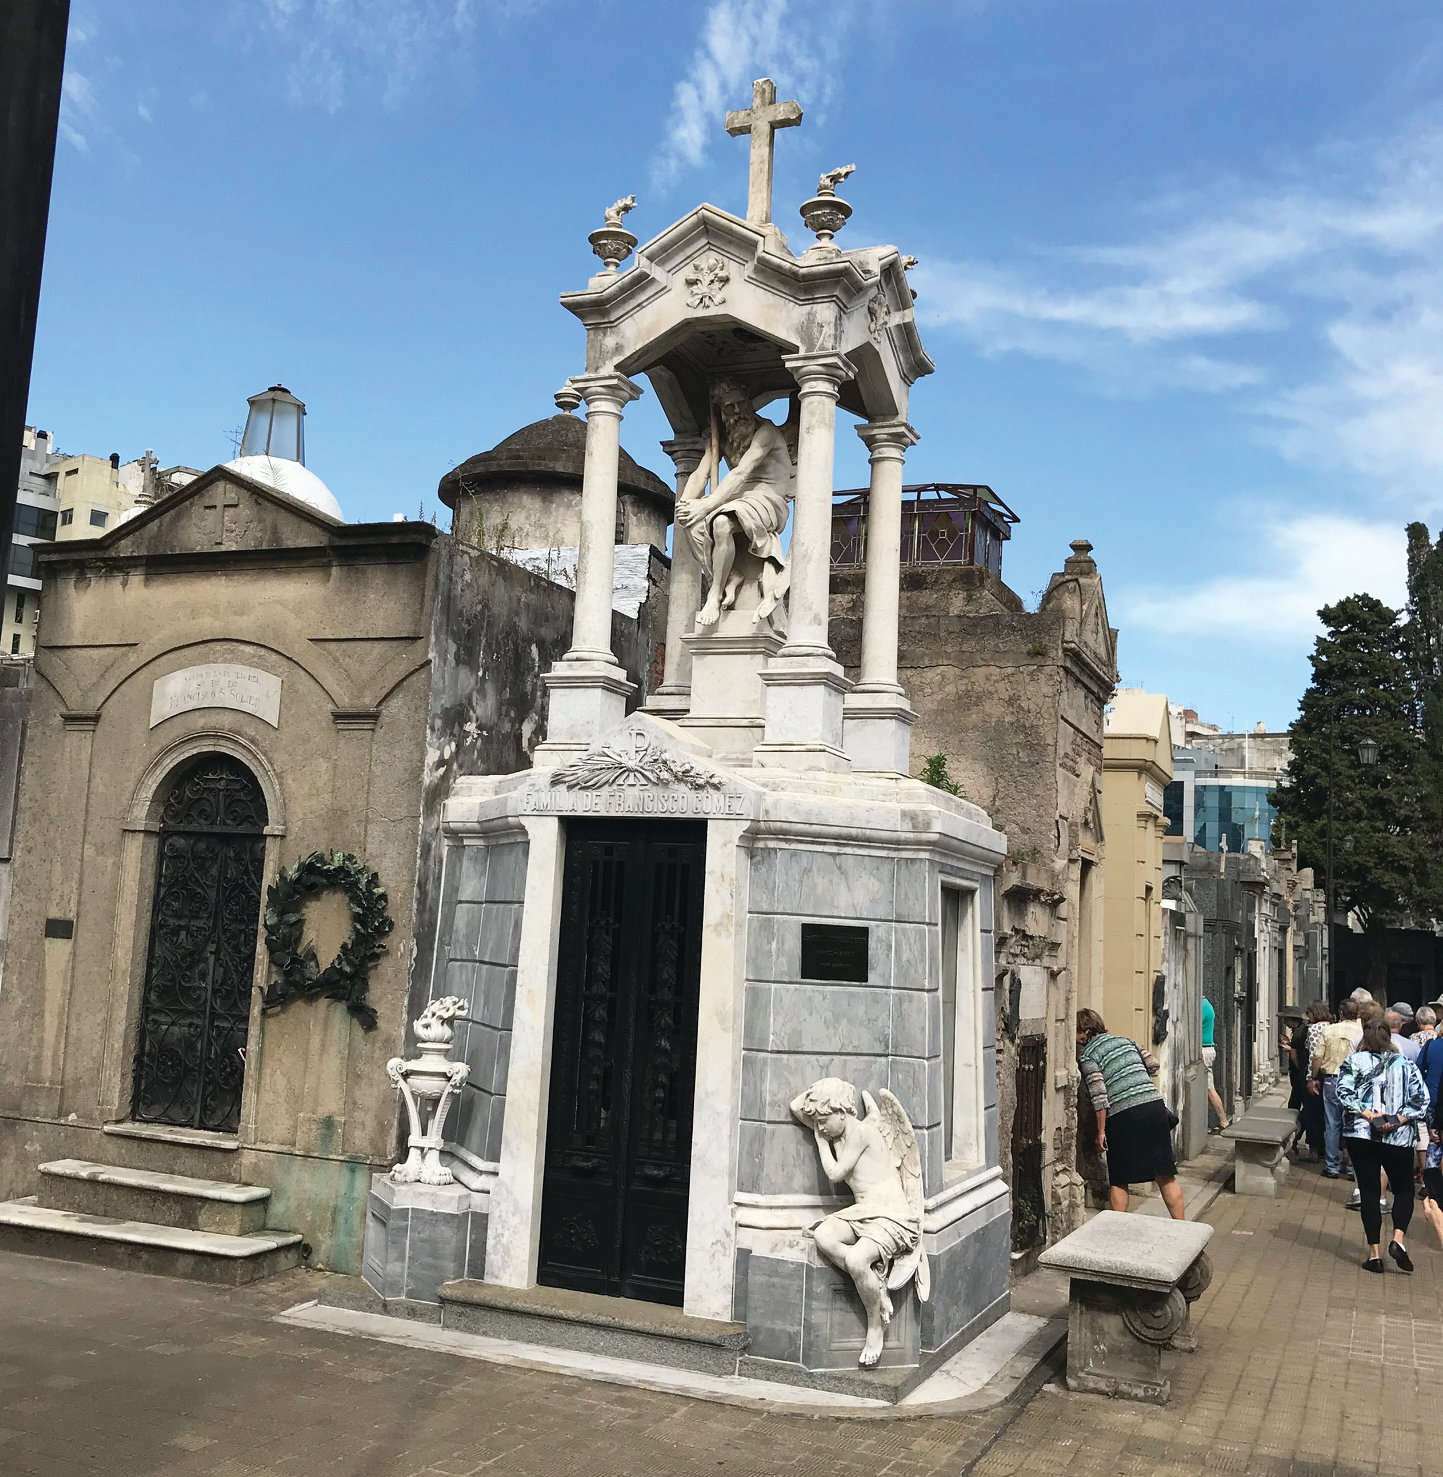 The ornate La Recoleta Cemetery at Buenos Aires, Argentina, is the final resting place of many prominent citizens of the nation.